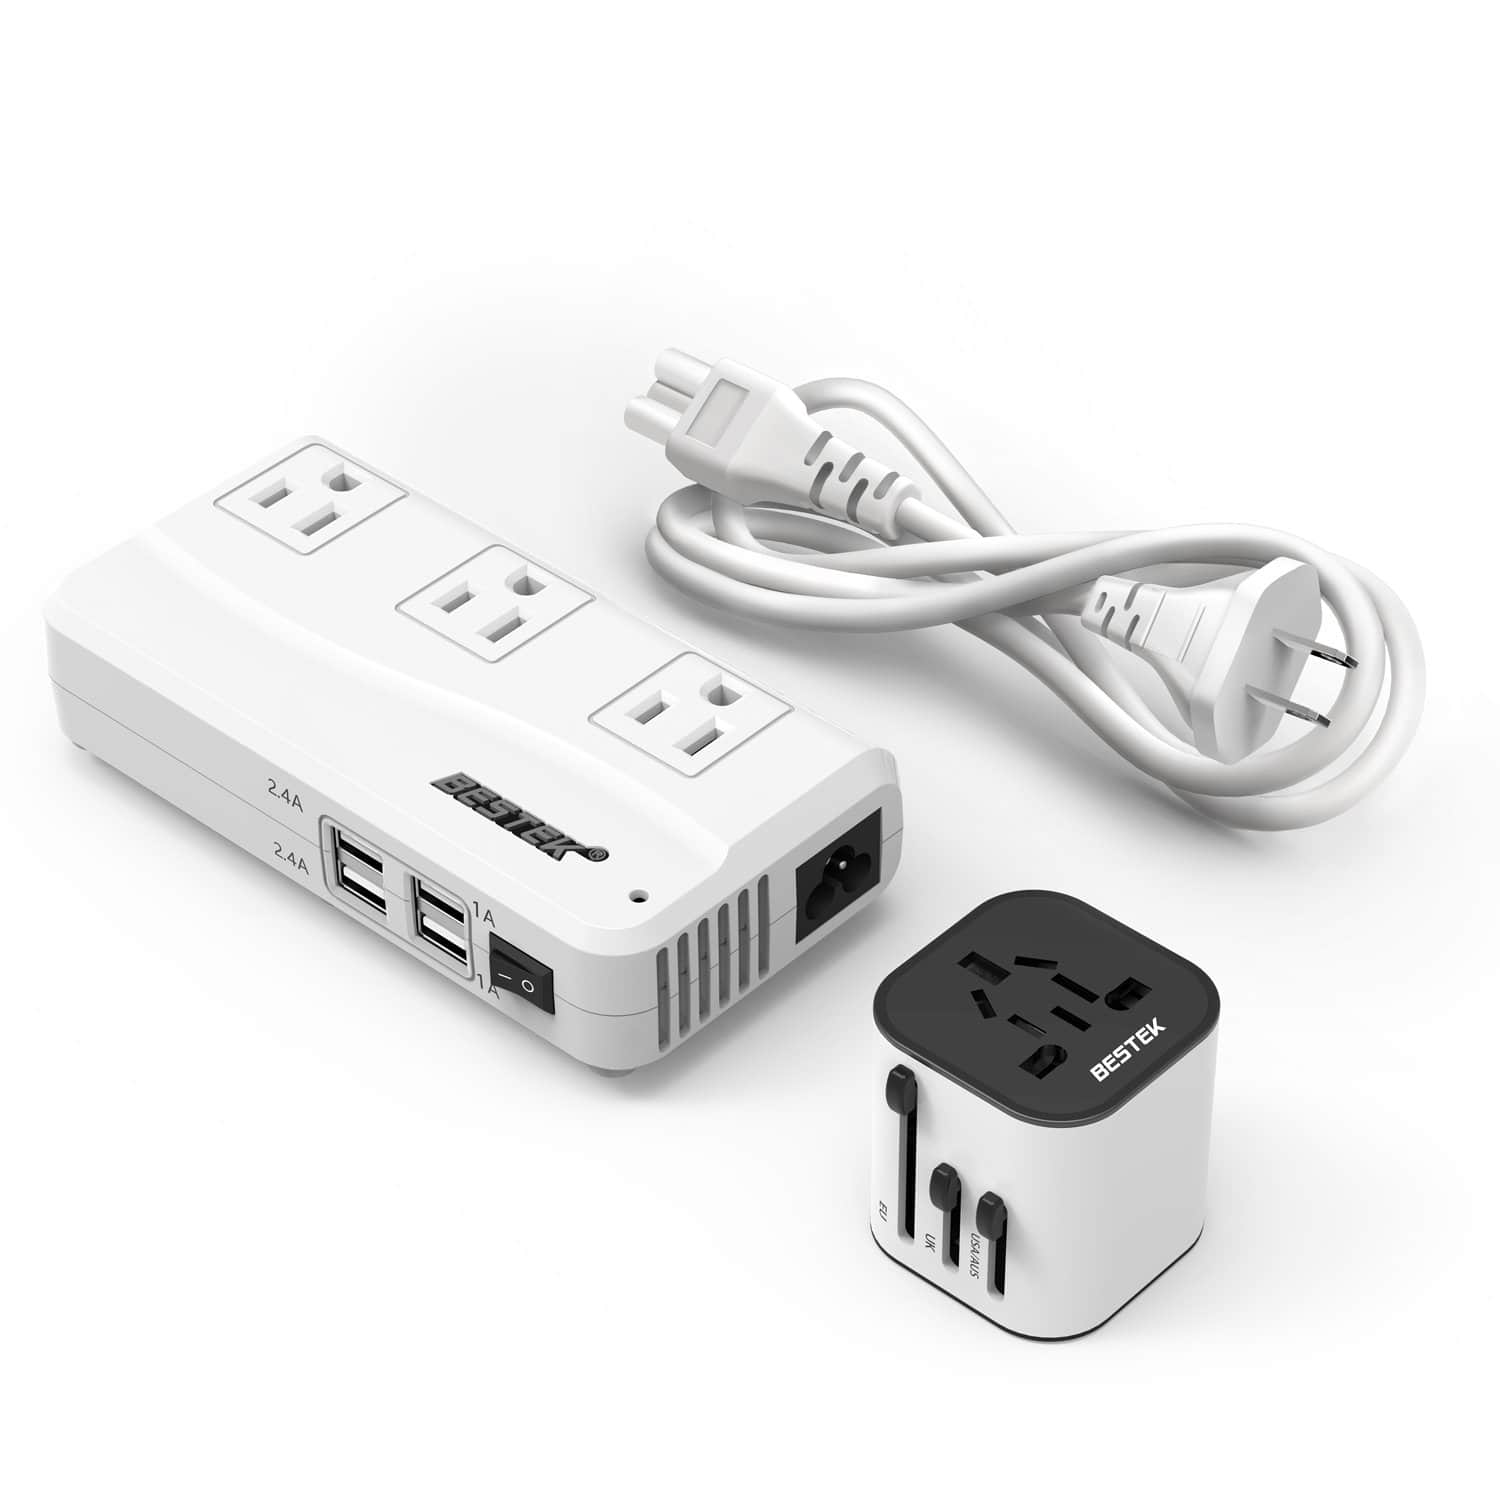 Travel Adapter Amazon Bestek Converter And Travel Adapter Combo For 9 97 Via